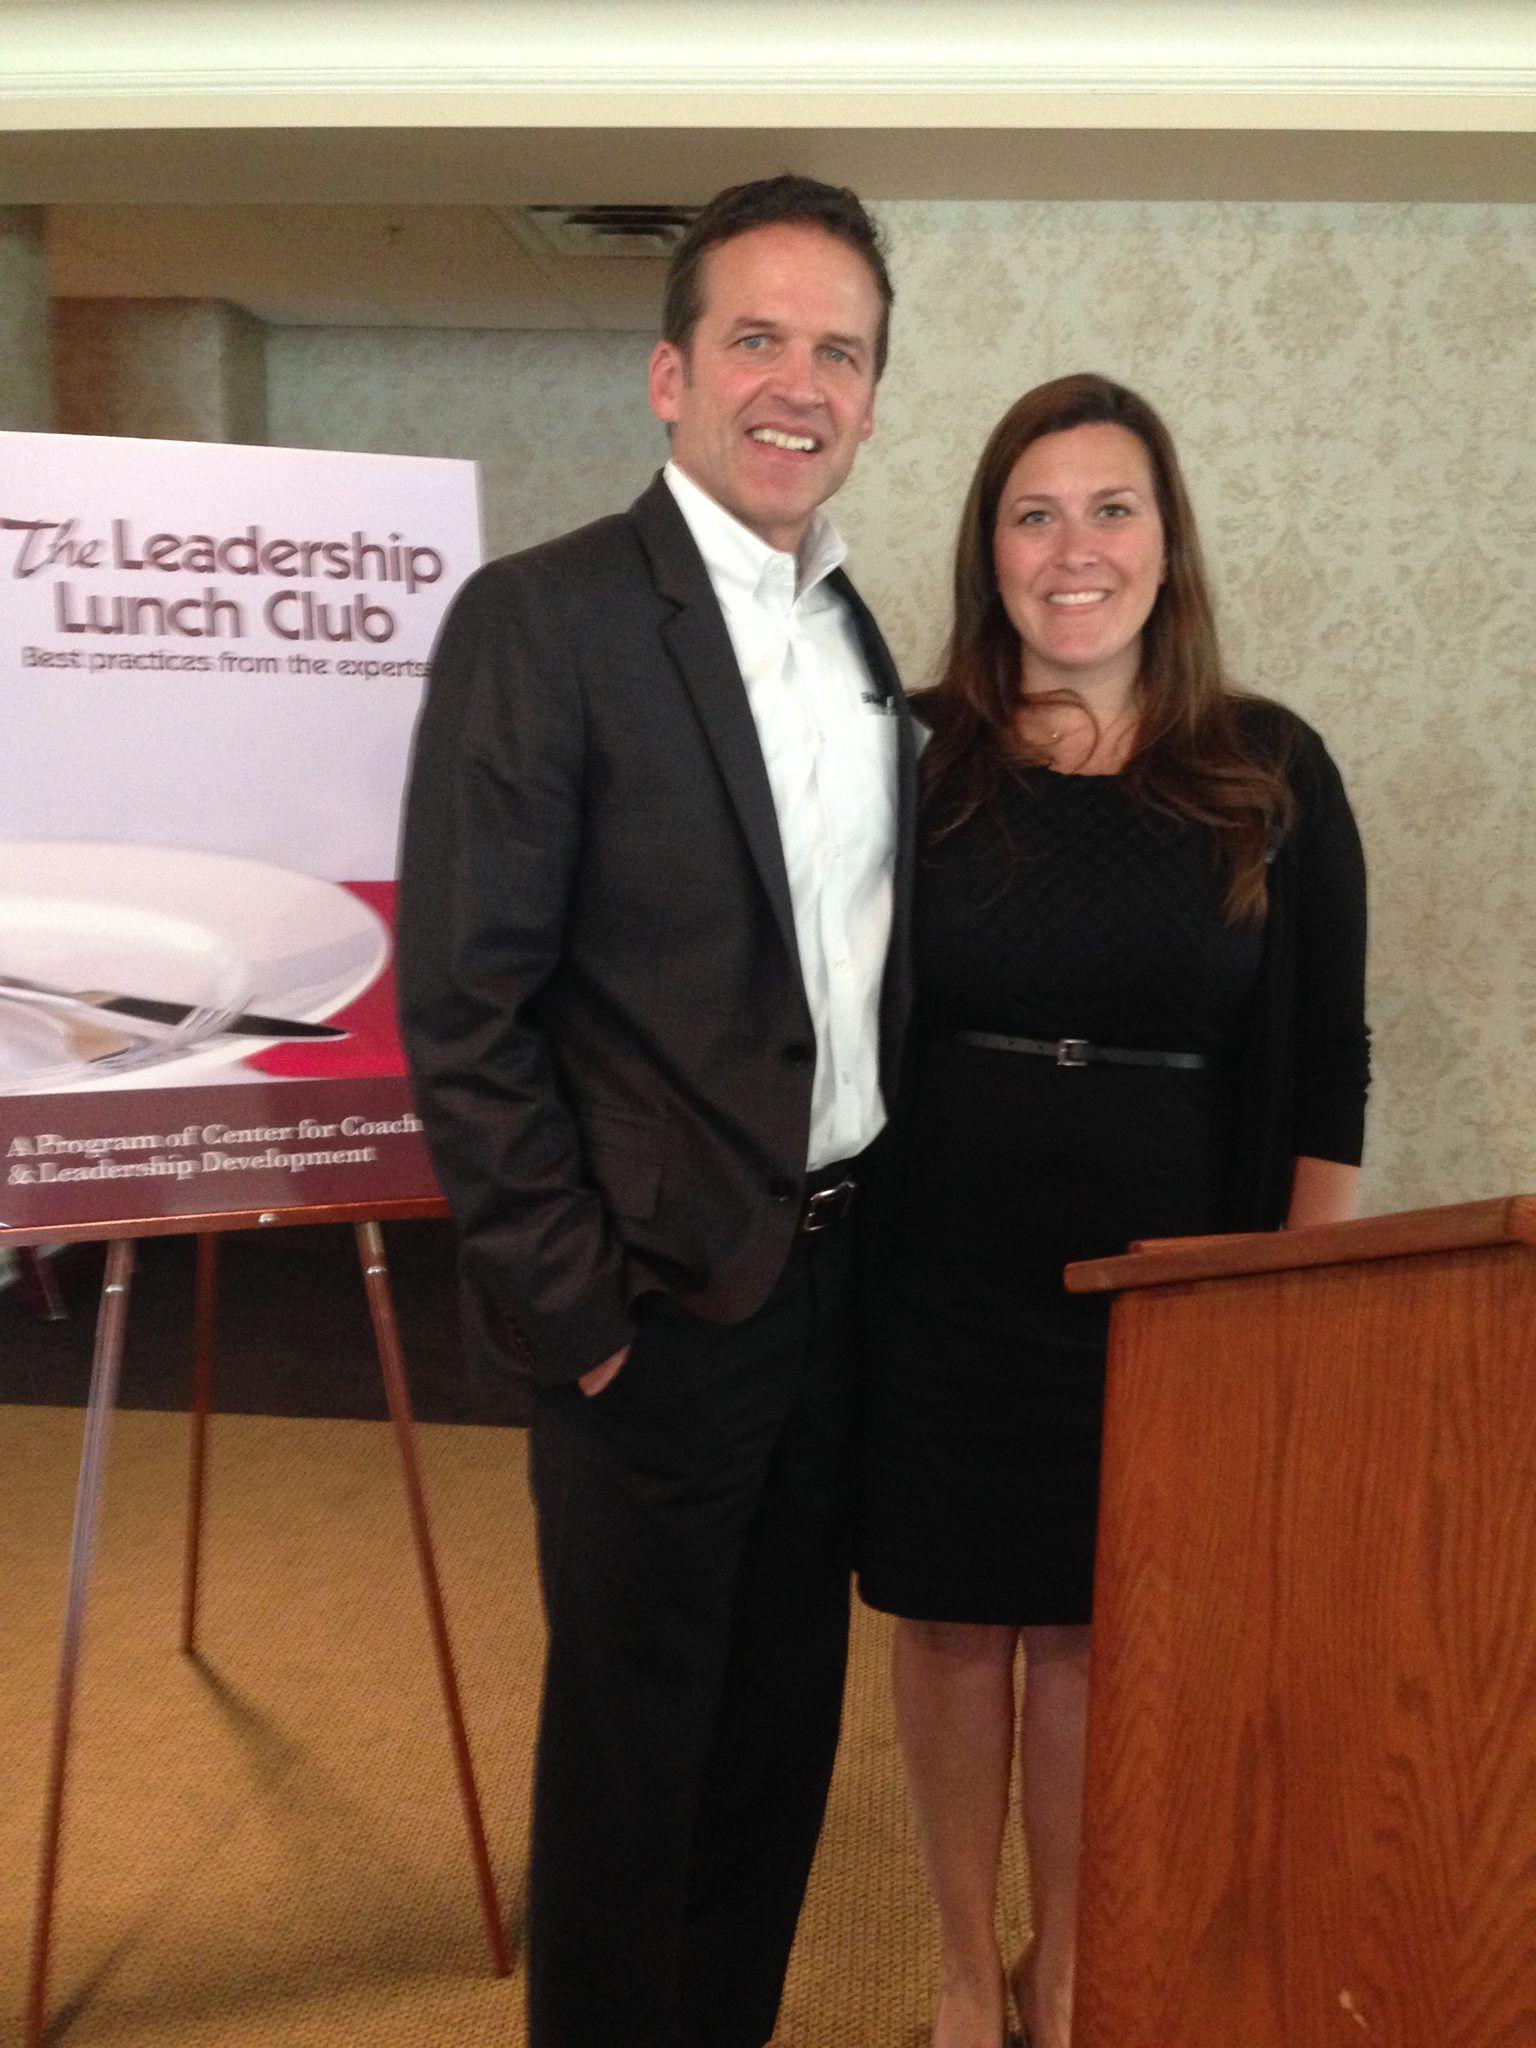 Allison and I after her recent presentation on business etiquette.